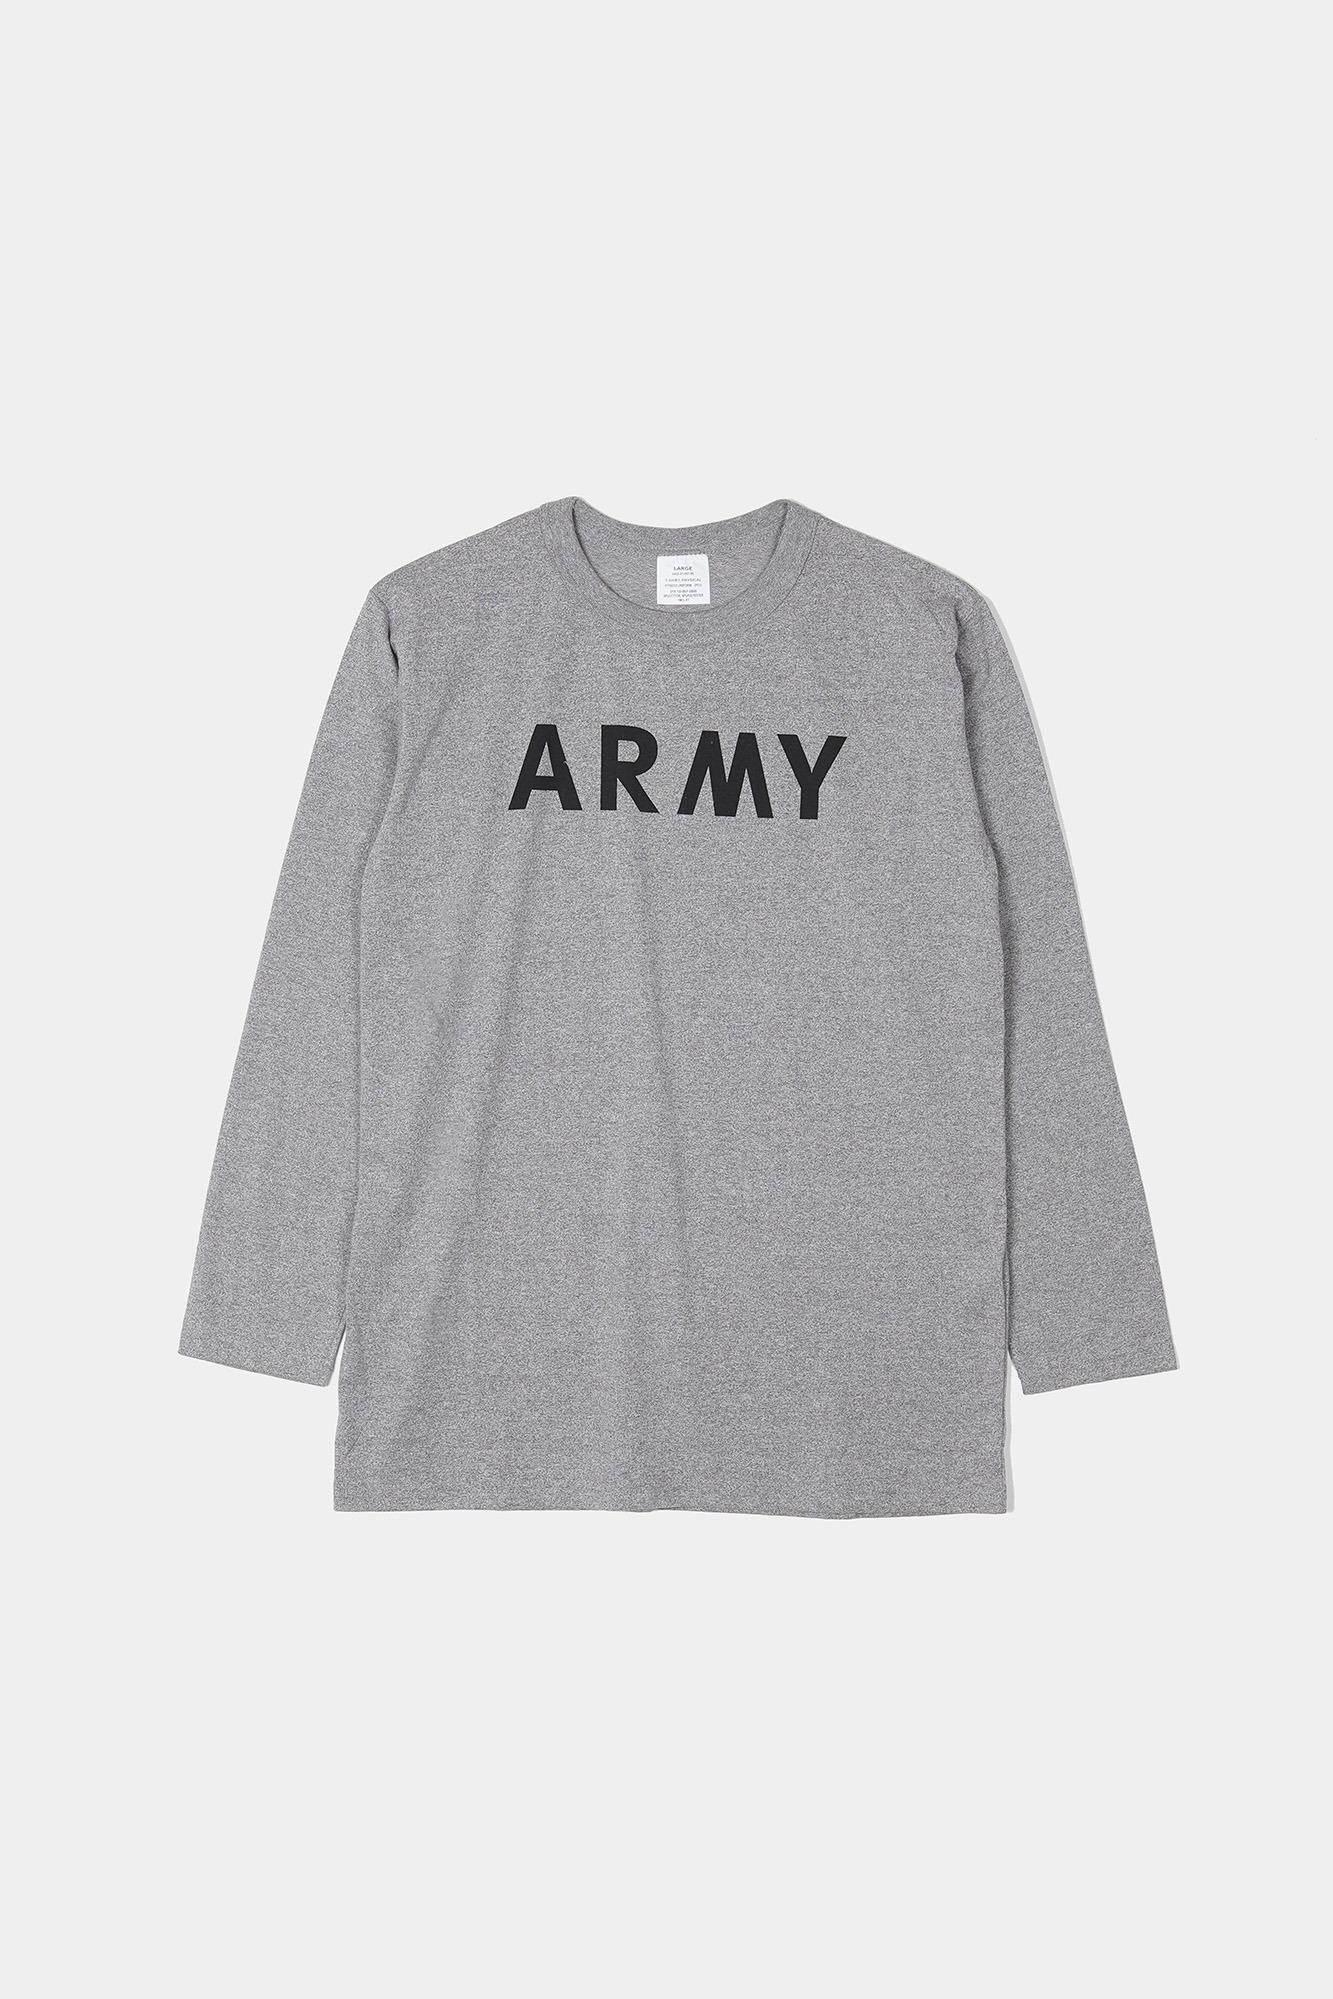 YMCL KY US ARMY Long Sleeve T-shirt